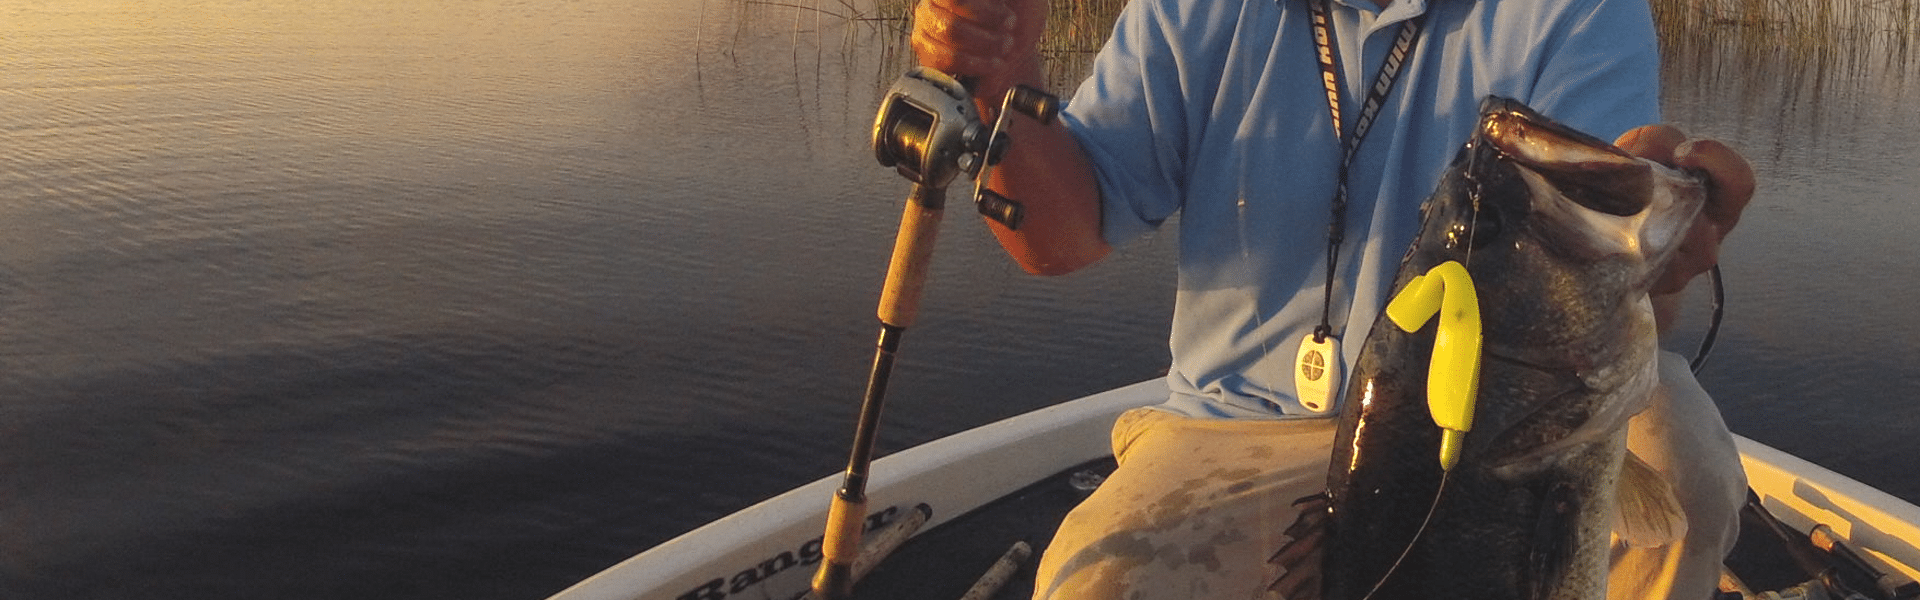 Best Swimbait Rods Reviewed in Detail